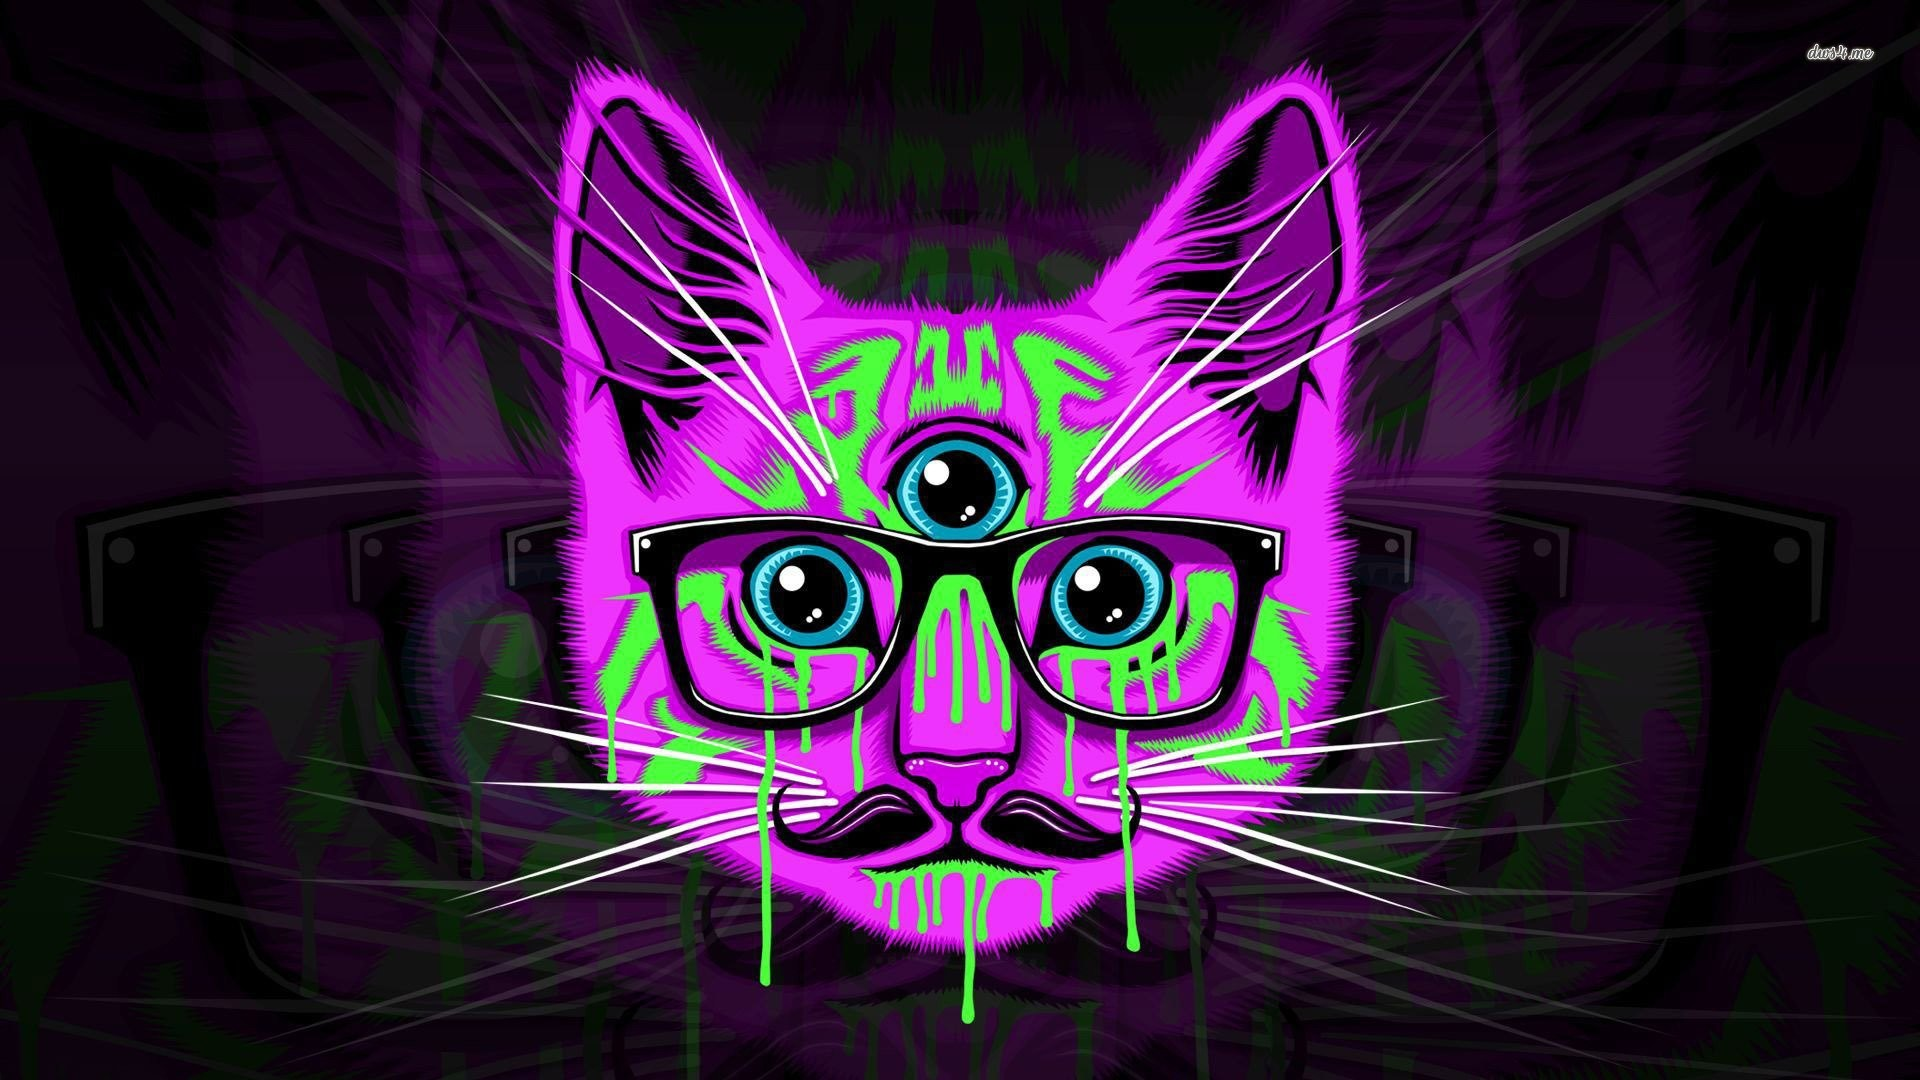 Hipster Cat wallpaper for iphone